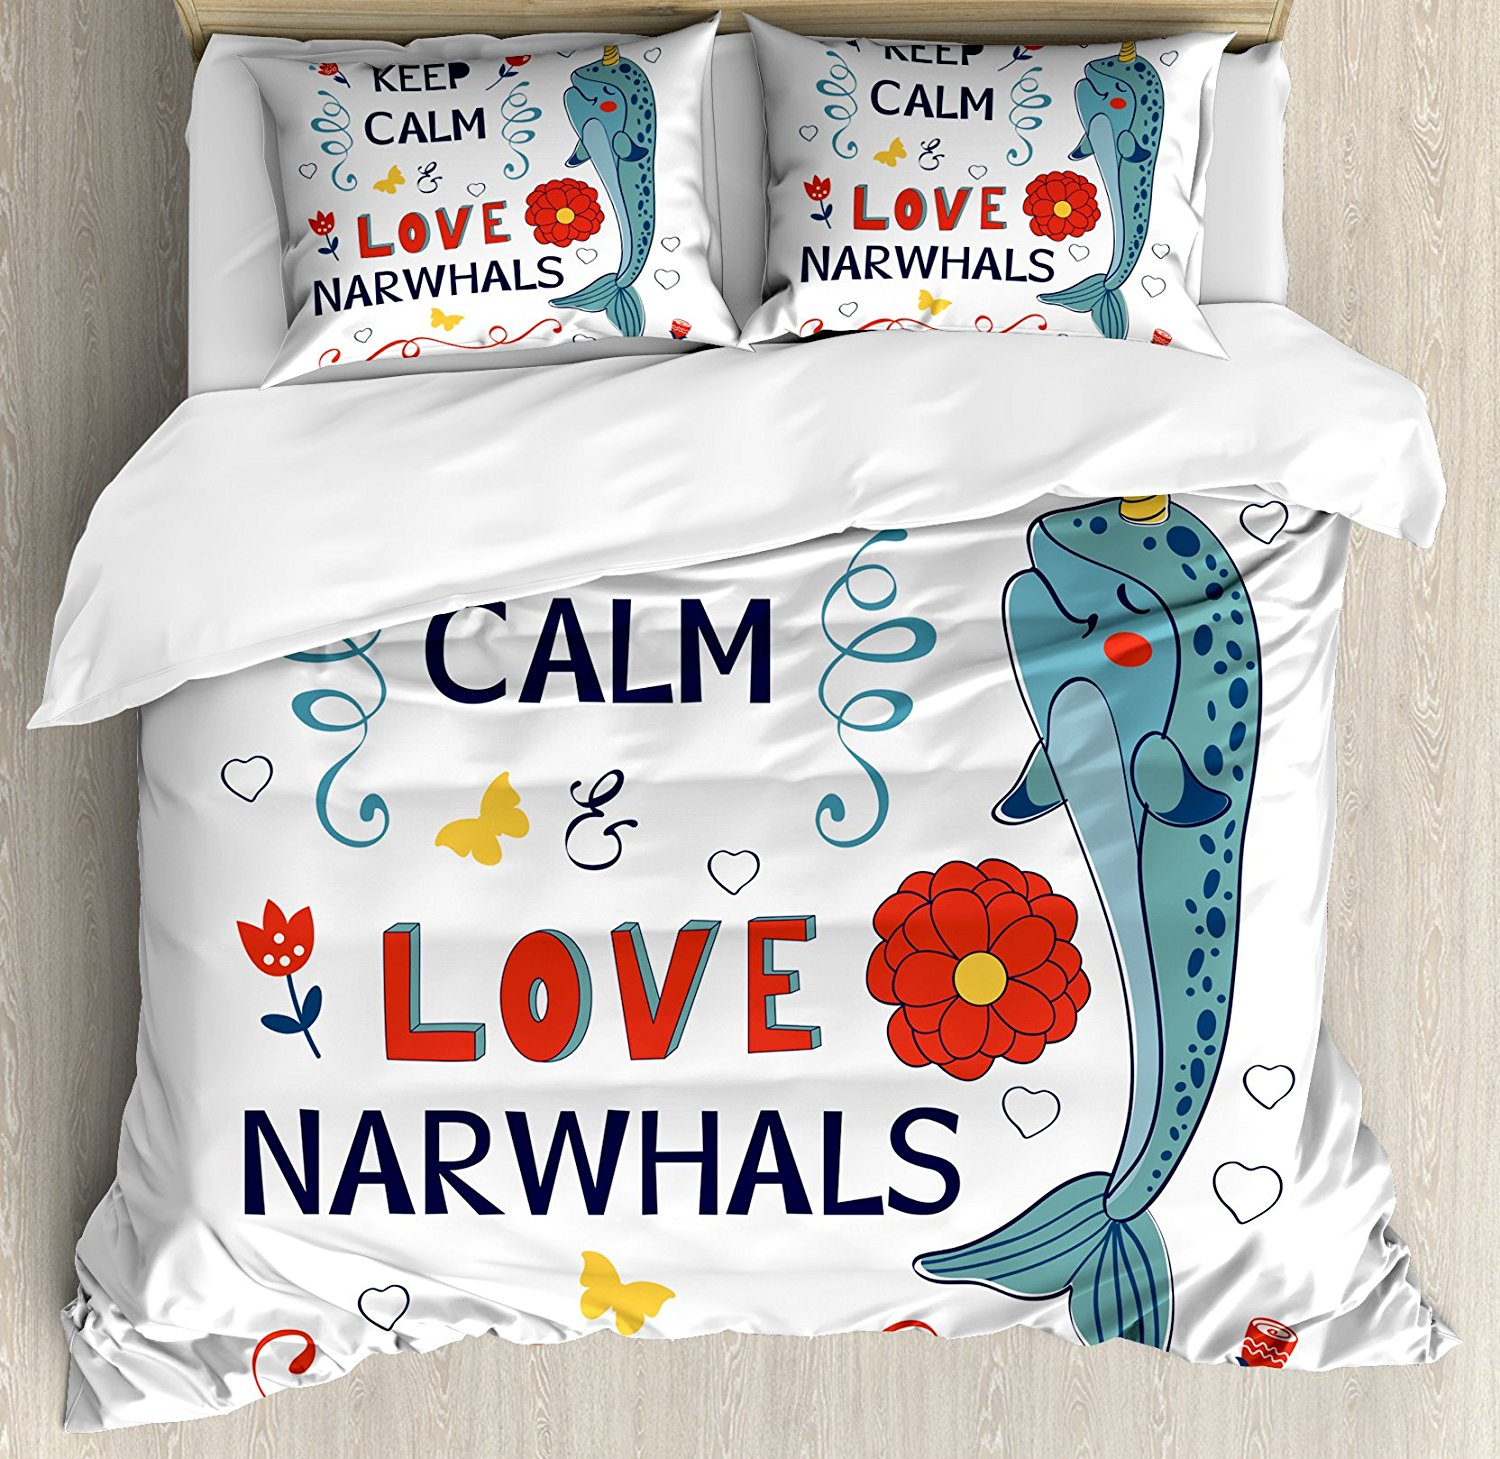 Narwhal Duvet Cover Set Culture Phrase with Unicorn of the Ocean Design Colorful Cartoon Character Decorative 4Piece Bedding Set